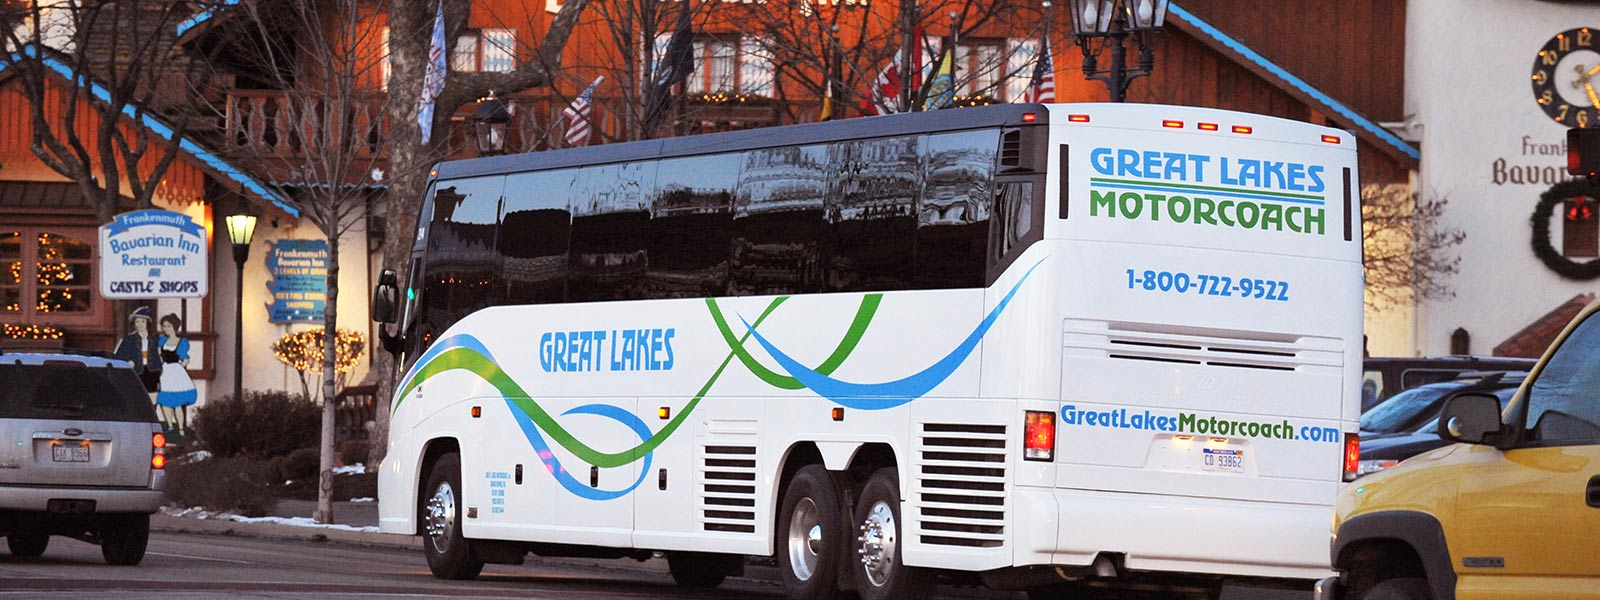 Michigan bus tours